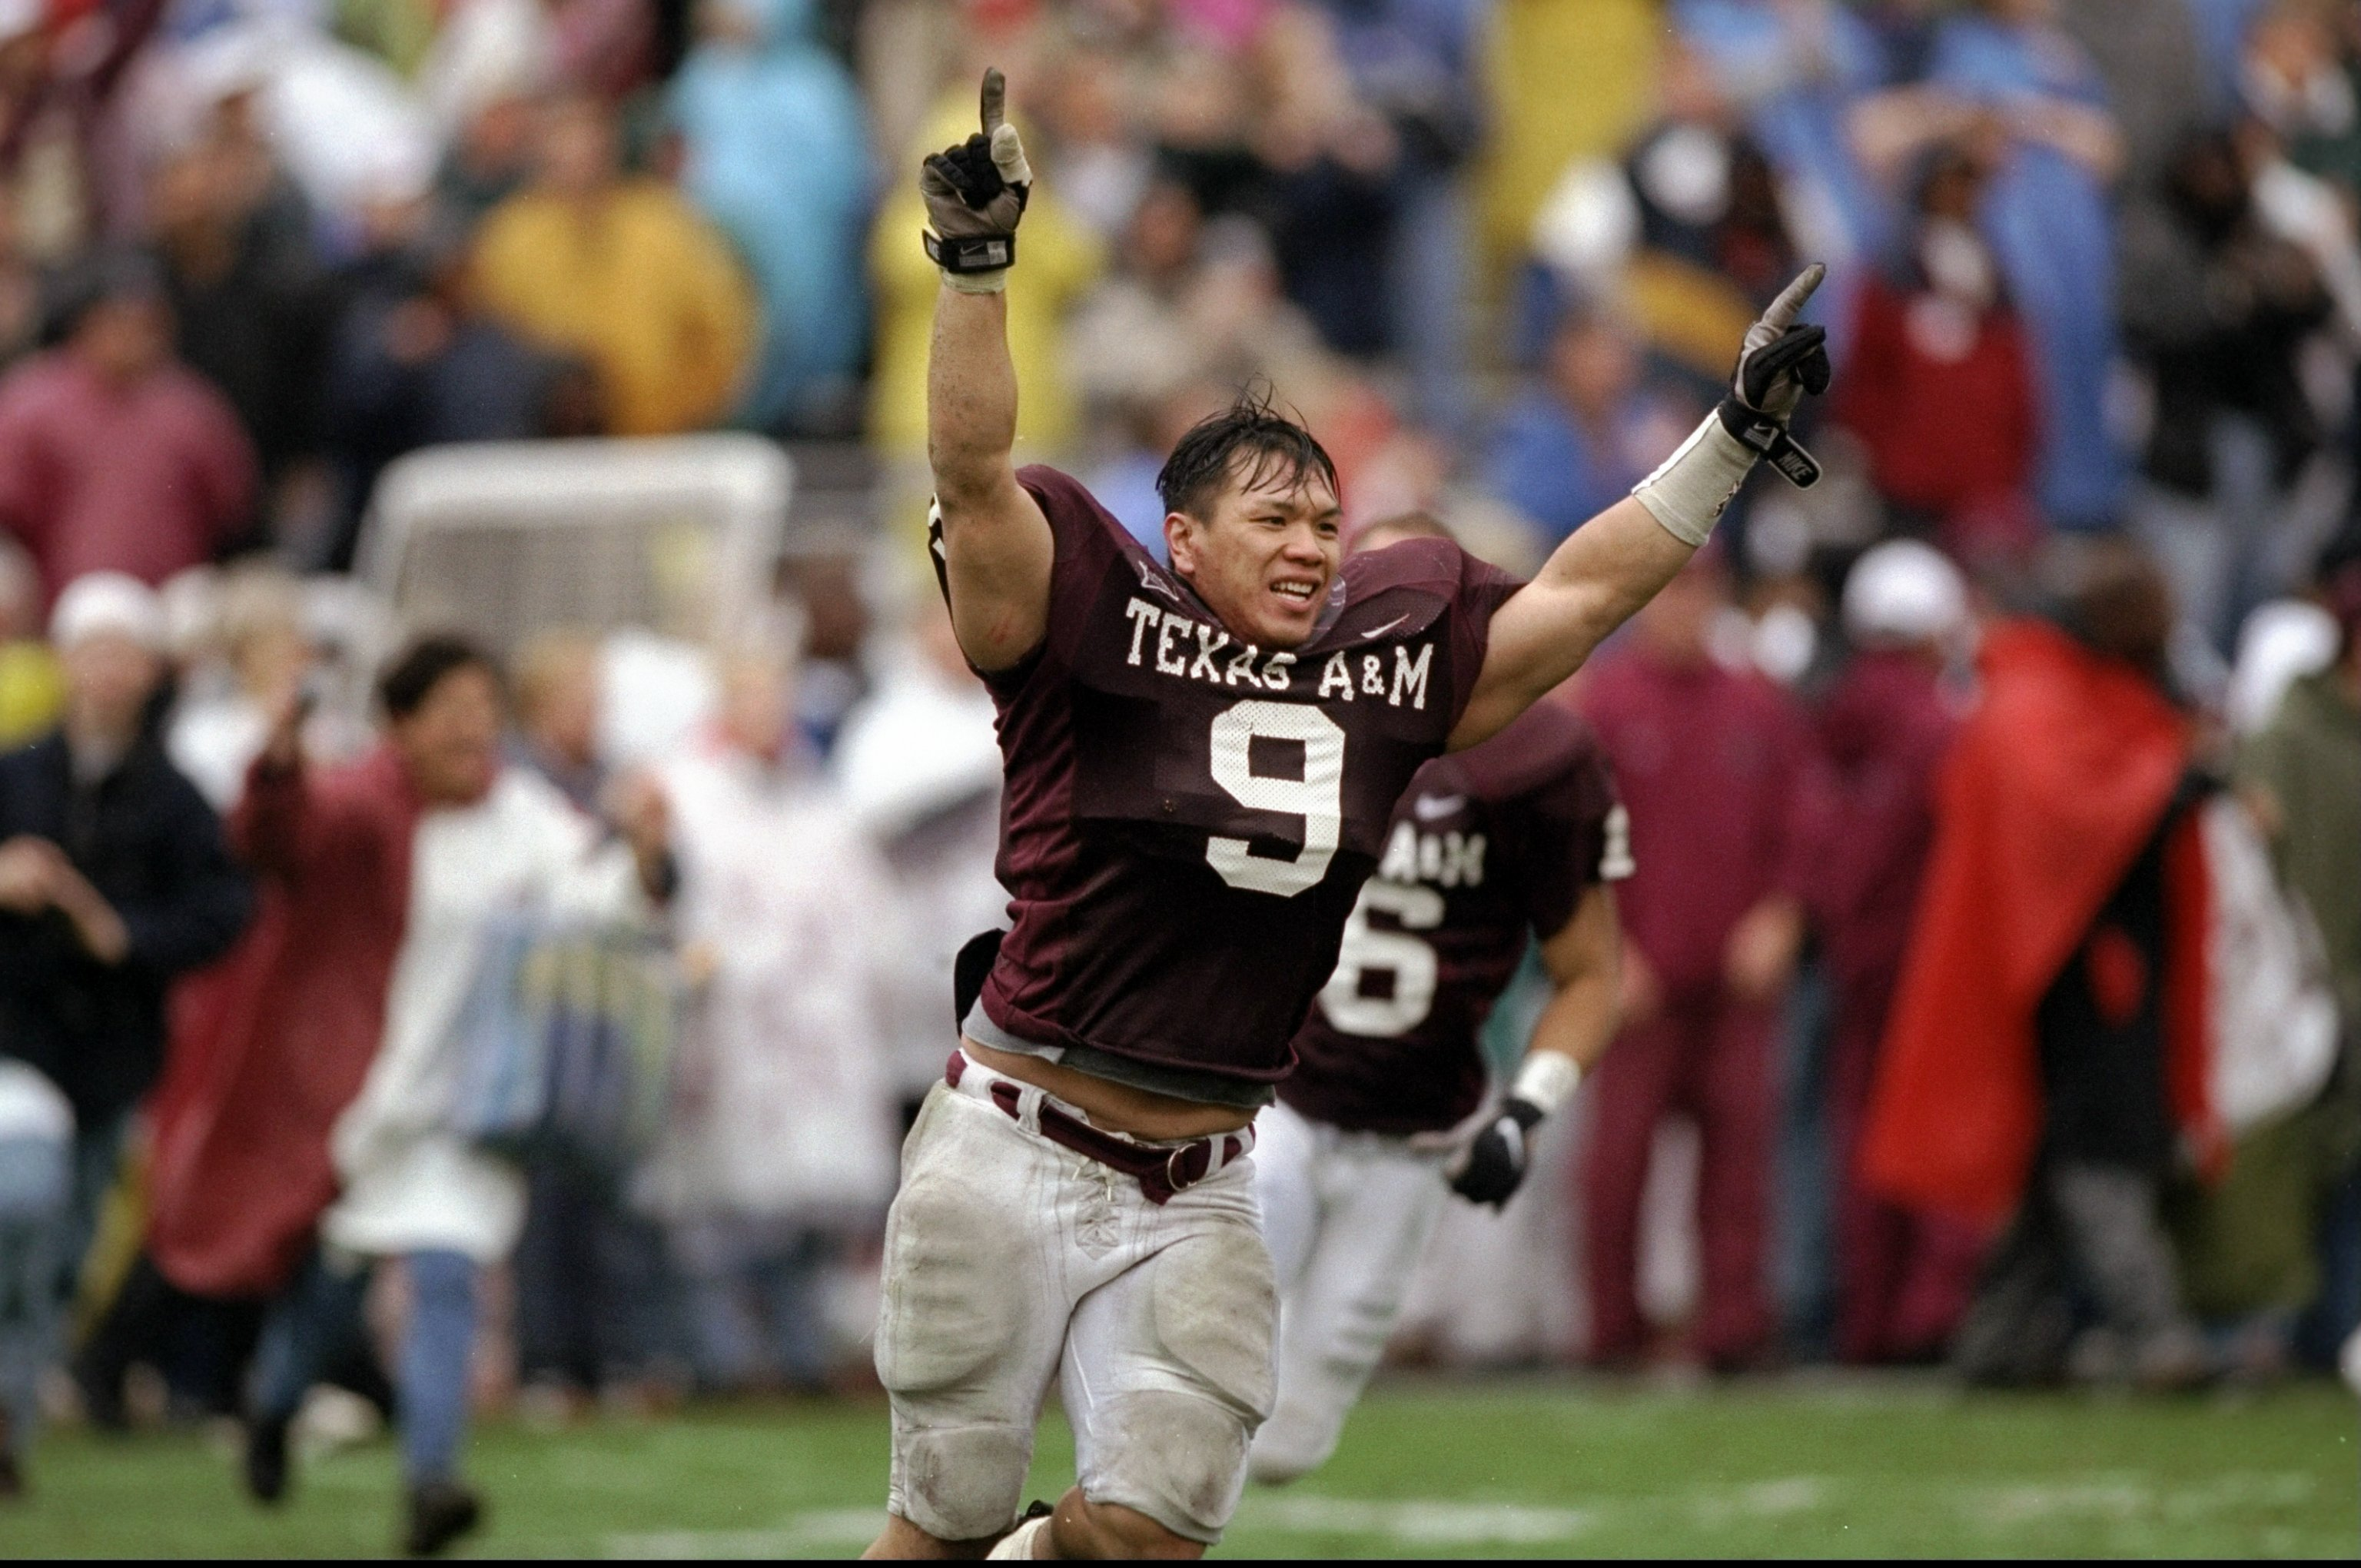 finest selection 7f1c6 99dcd Dat Nguyen on 2017 College Football Hall of Fame Ballot ...